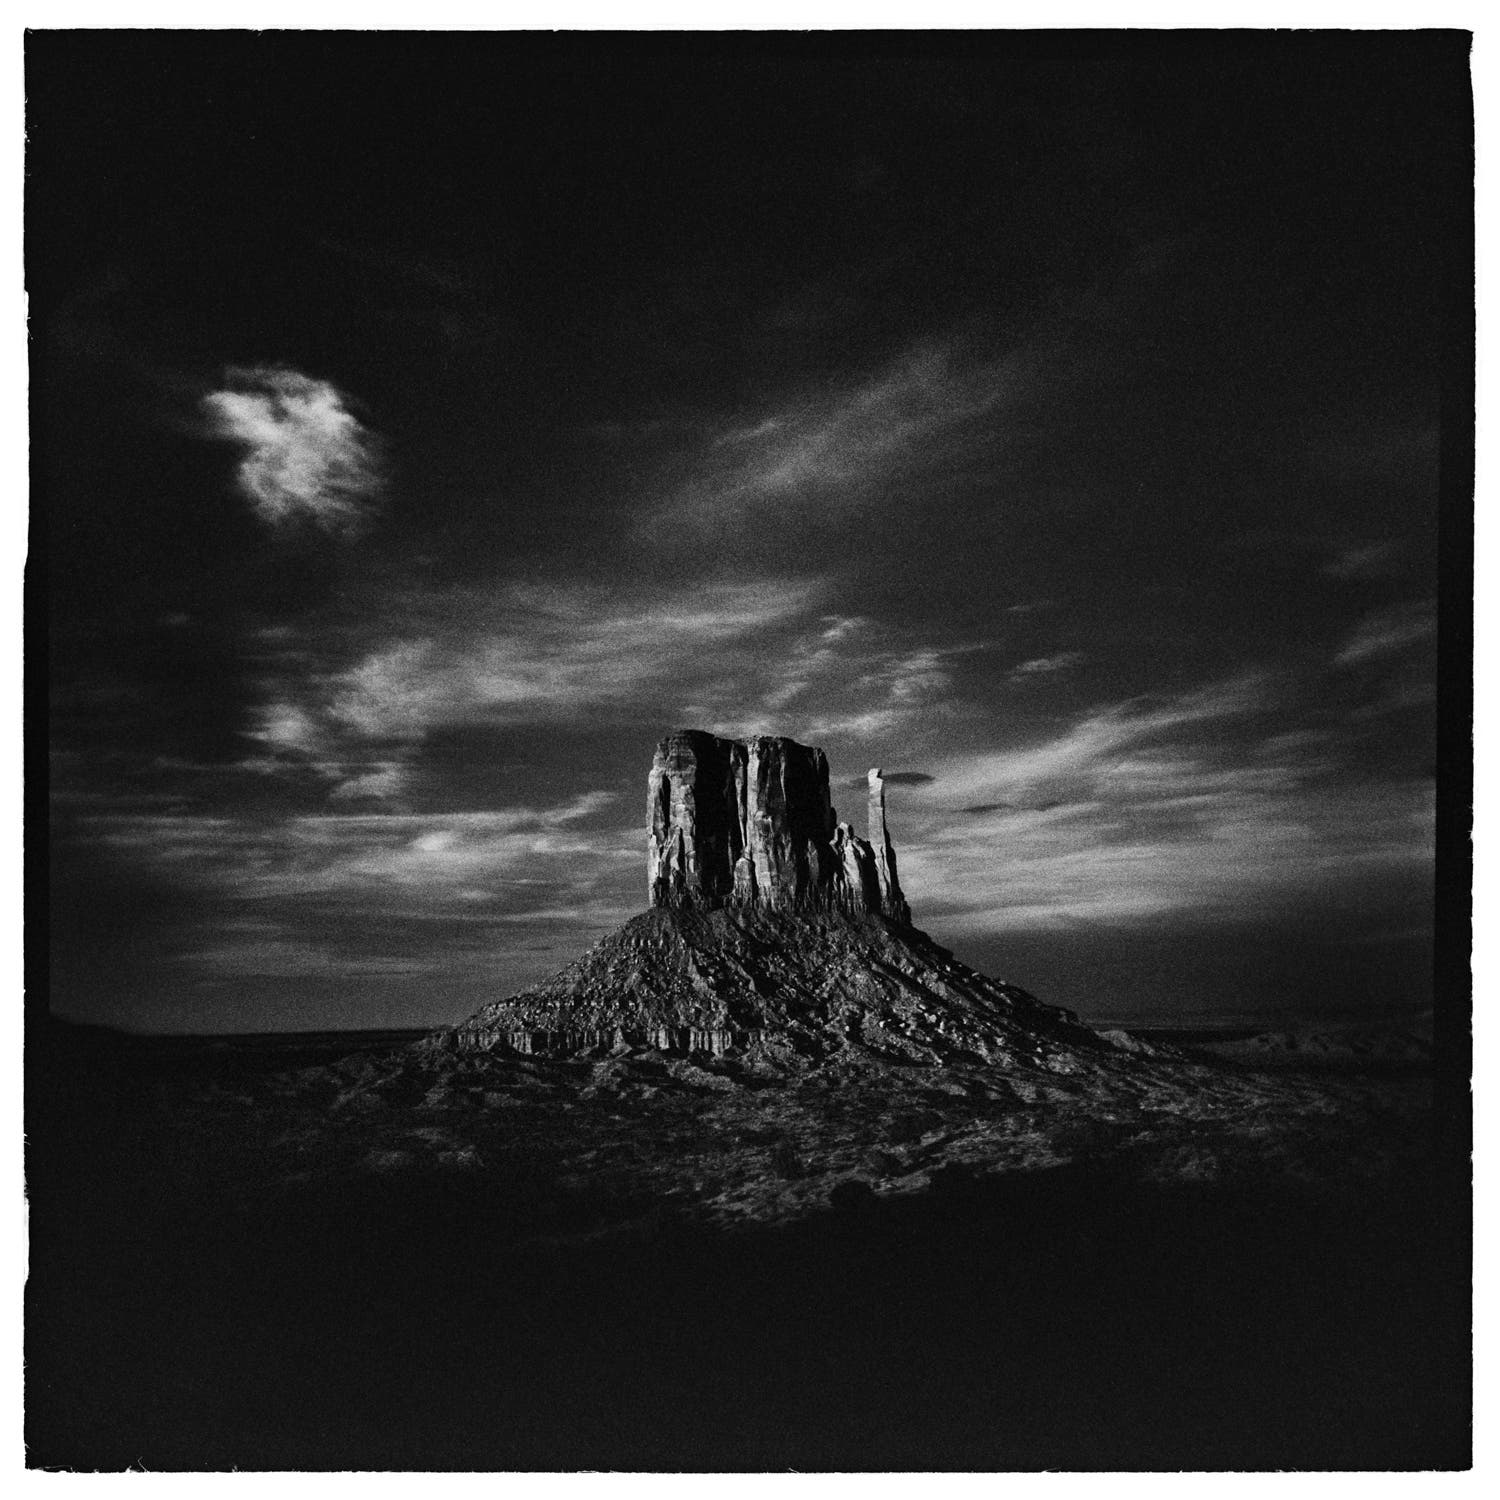 Troyce Hoffman Captures Stunning Black and White Landscapes Using a Holga